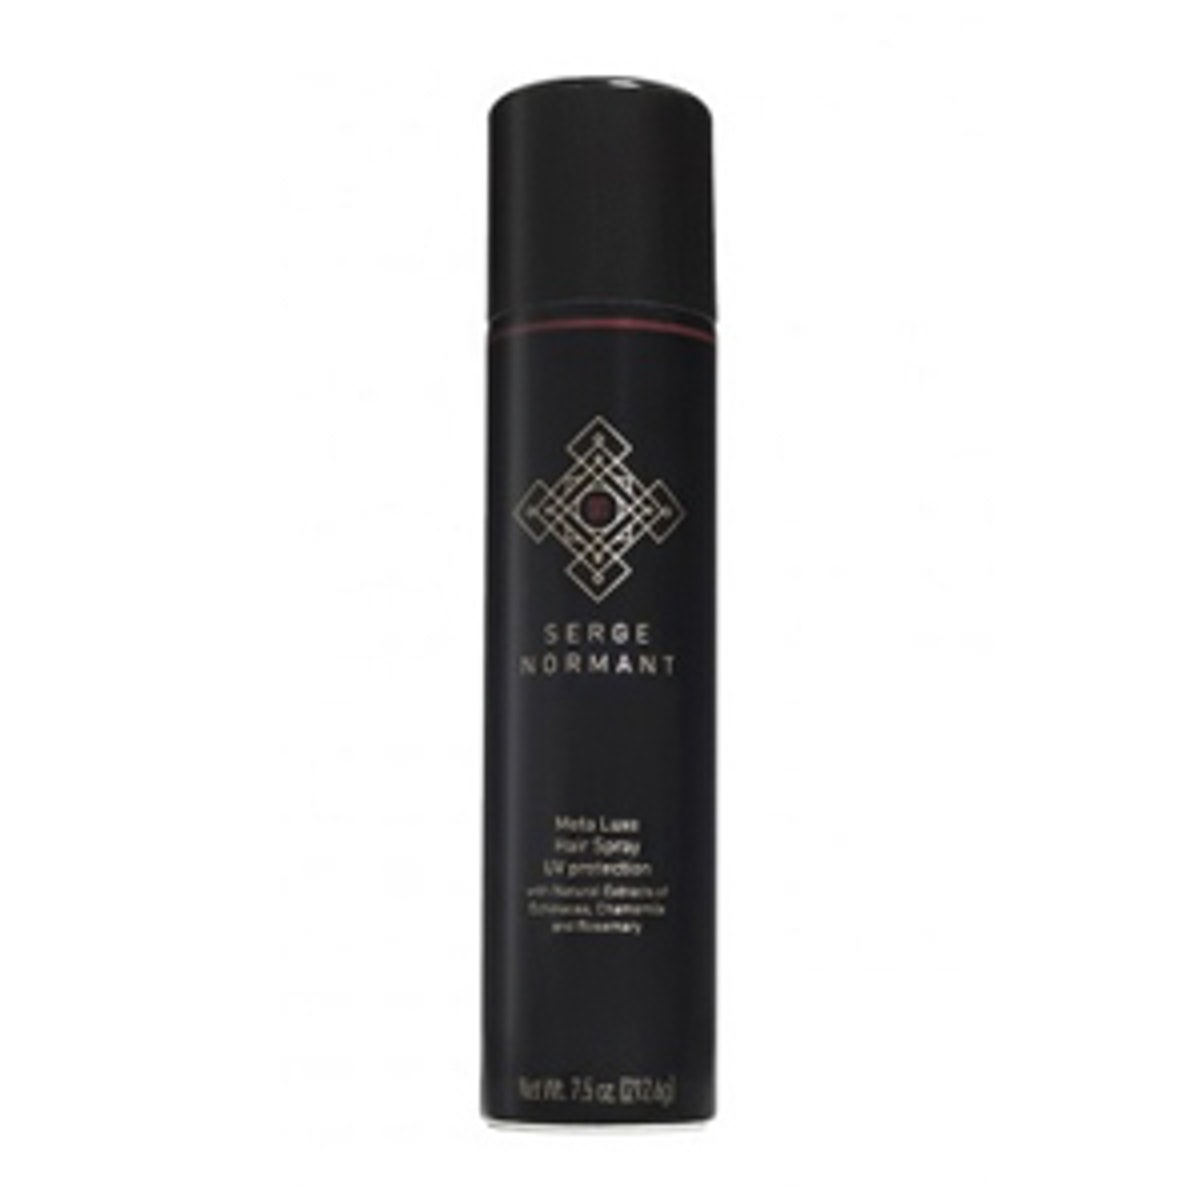 Serge Normant Meta Luxe Hair Spray